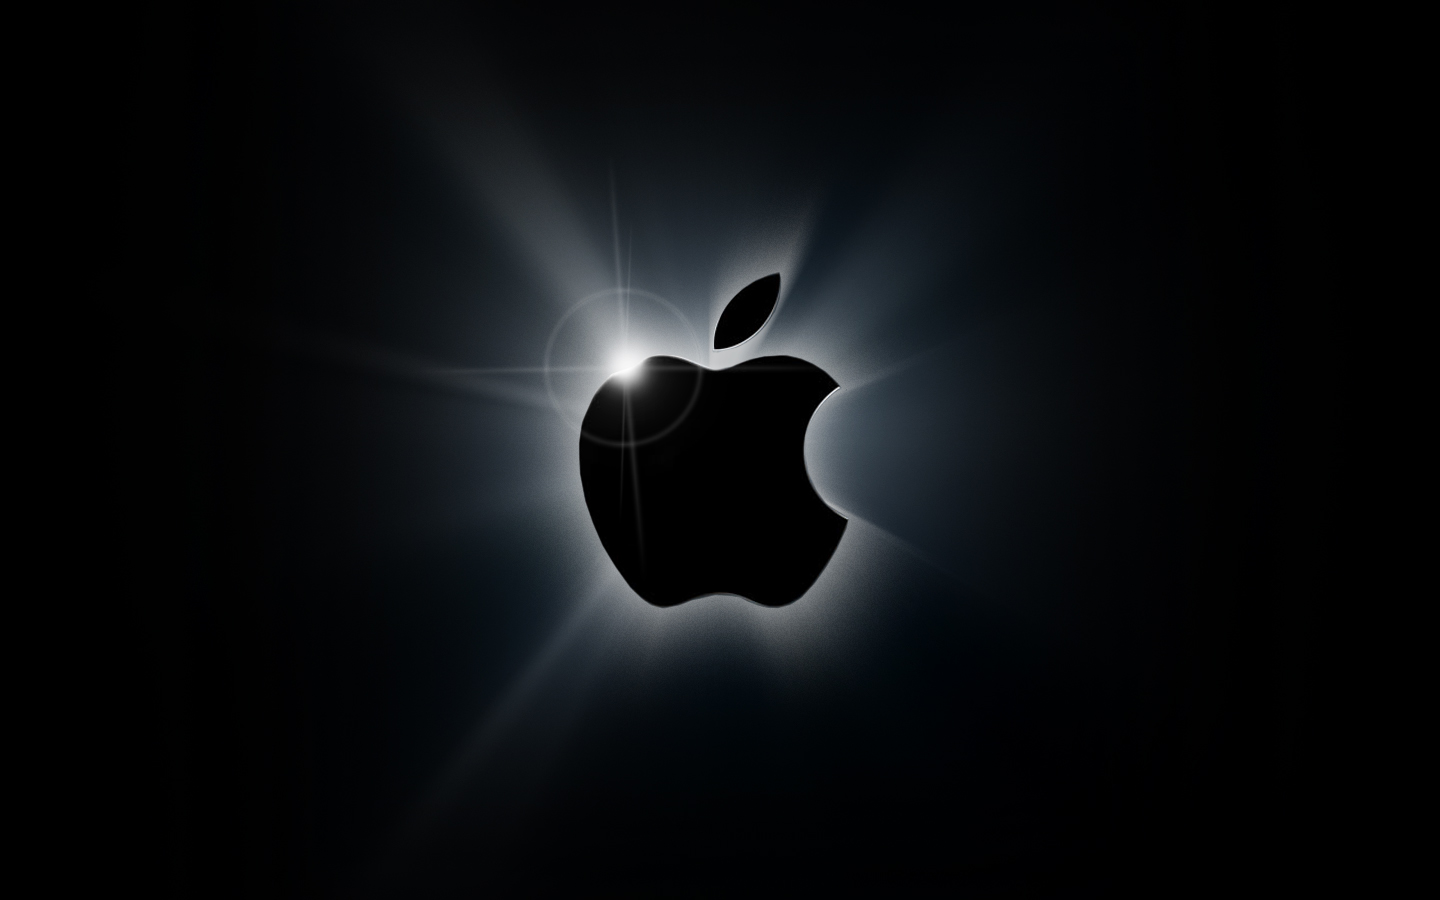 Wallpaper Mansion: Apple Black Logo Wallpaper